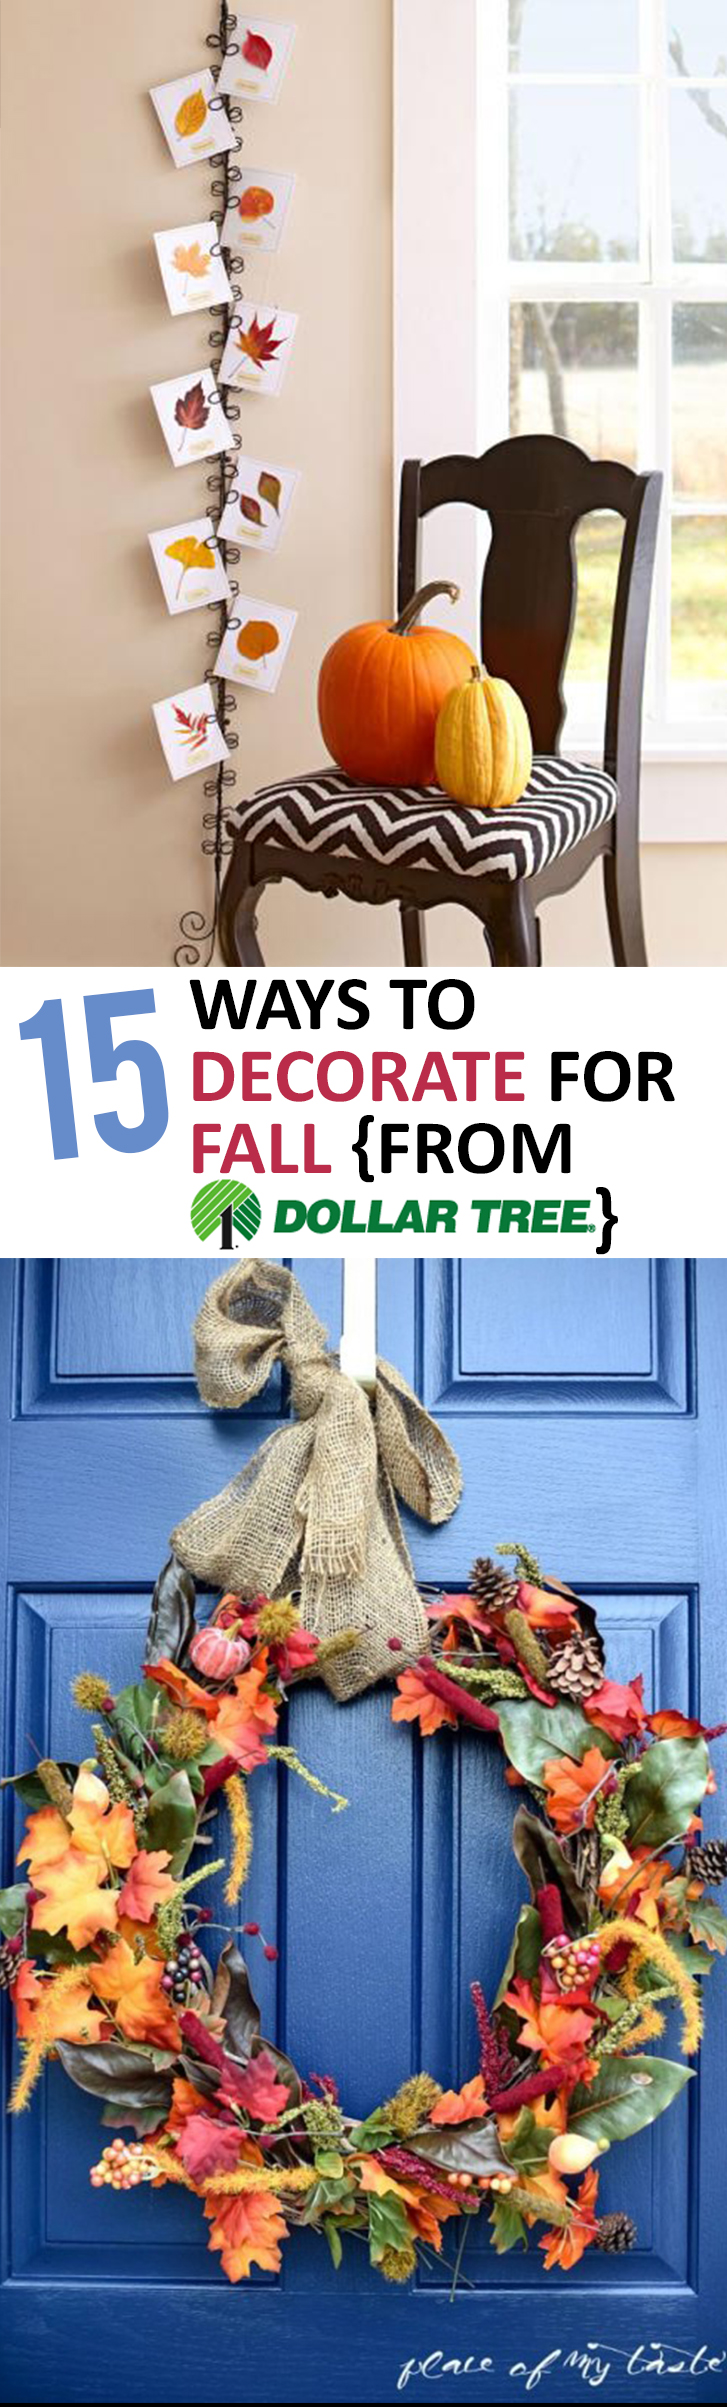 15 Ways to Decorate for Fall {From Dollar Tree}  Sunlit - Cheap Ways To Decorate For Halloween